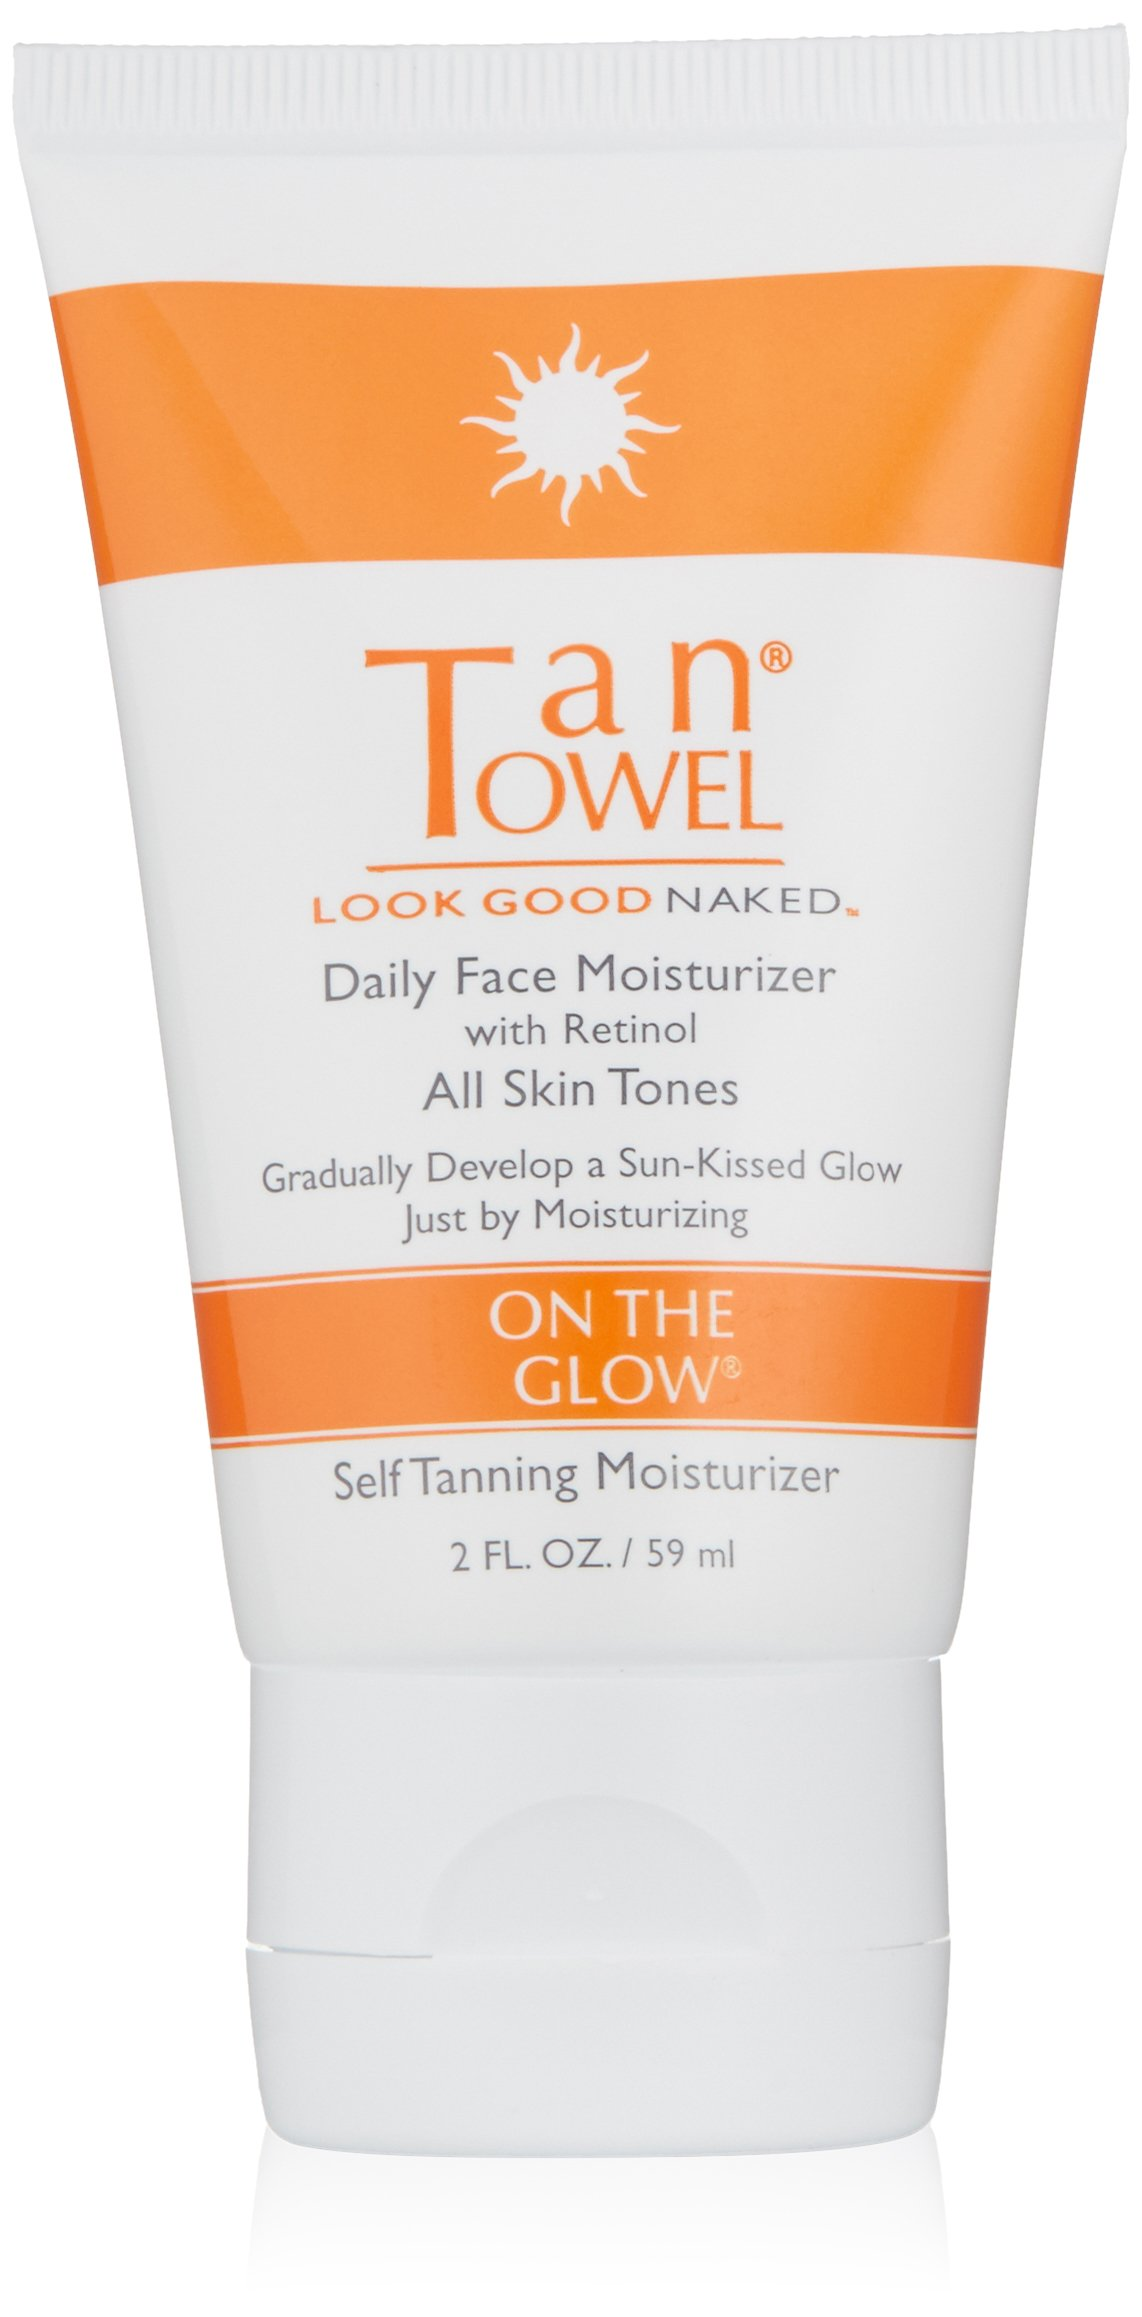 Amazon.com: TanTowel On The Glow - Daily Face Moisturizer with retinol - 2  oz: Luxury Beauty